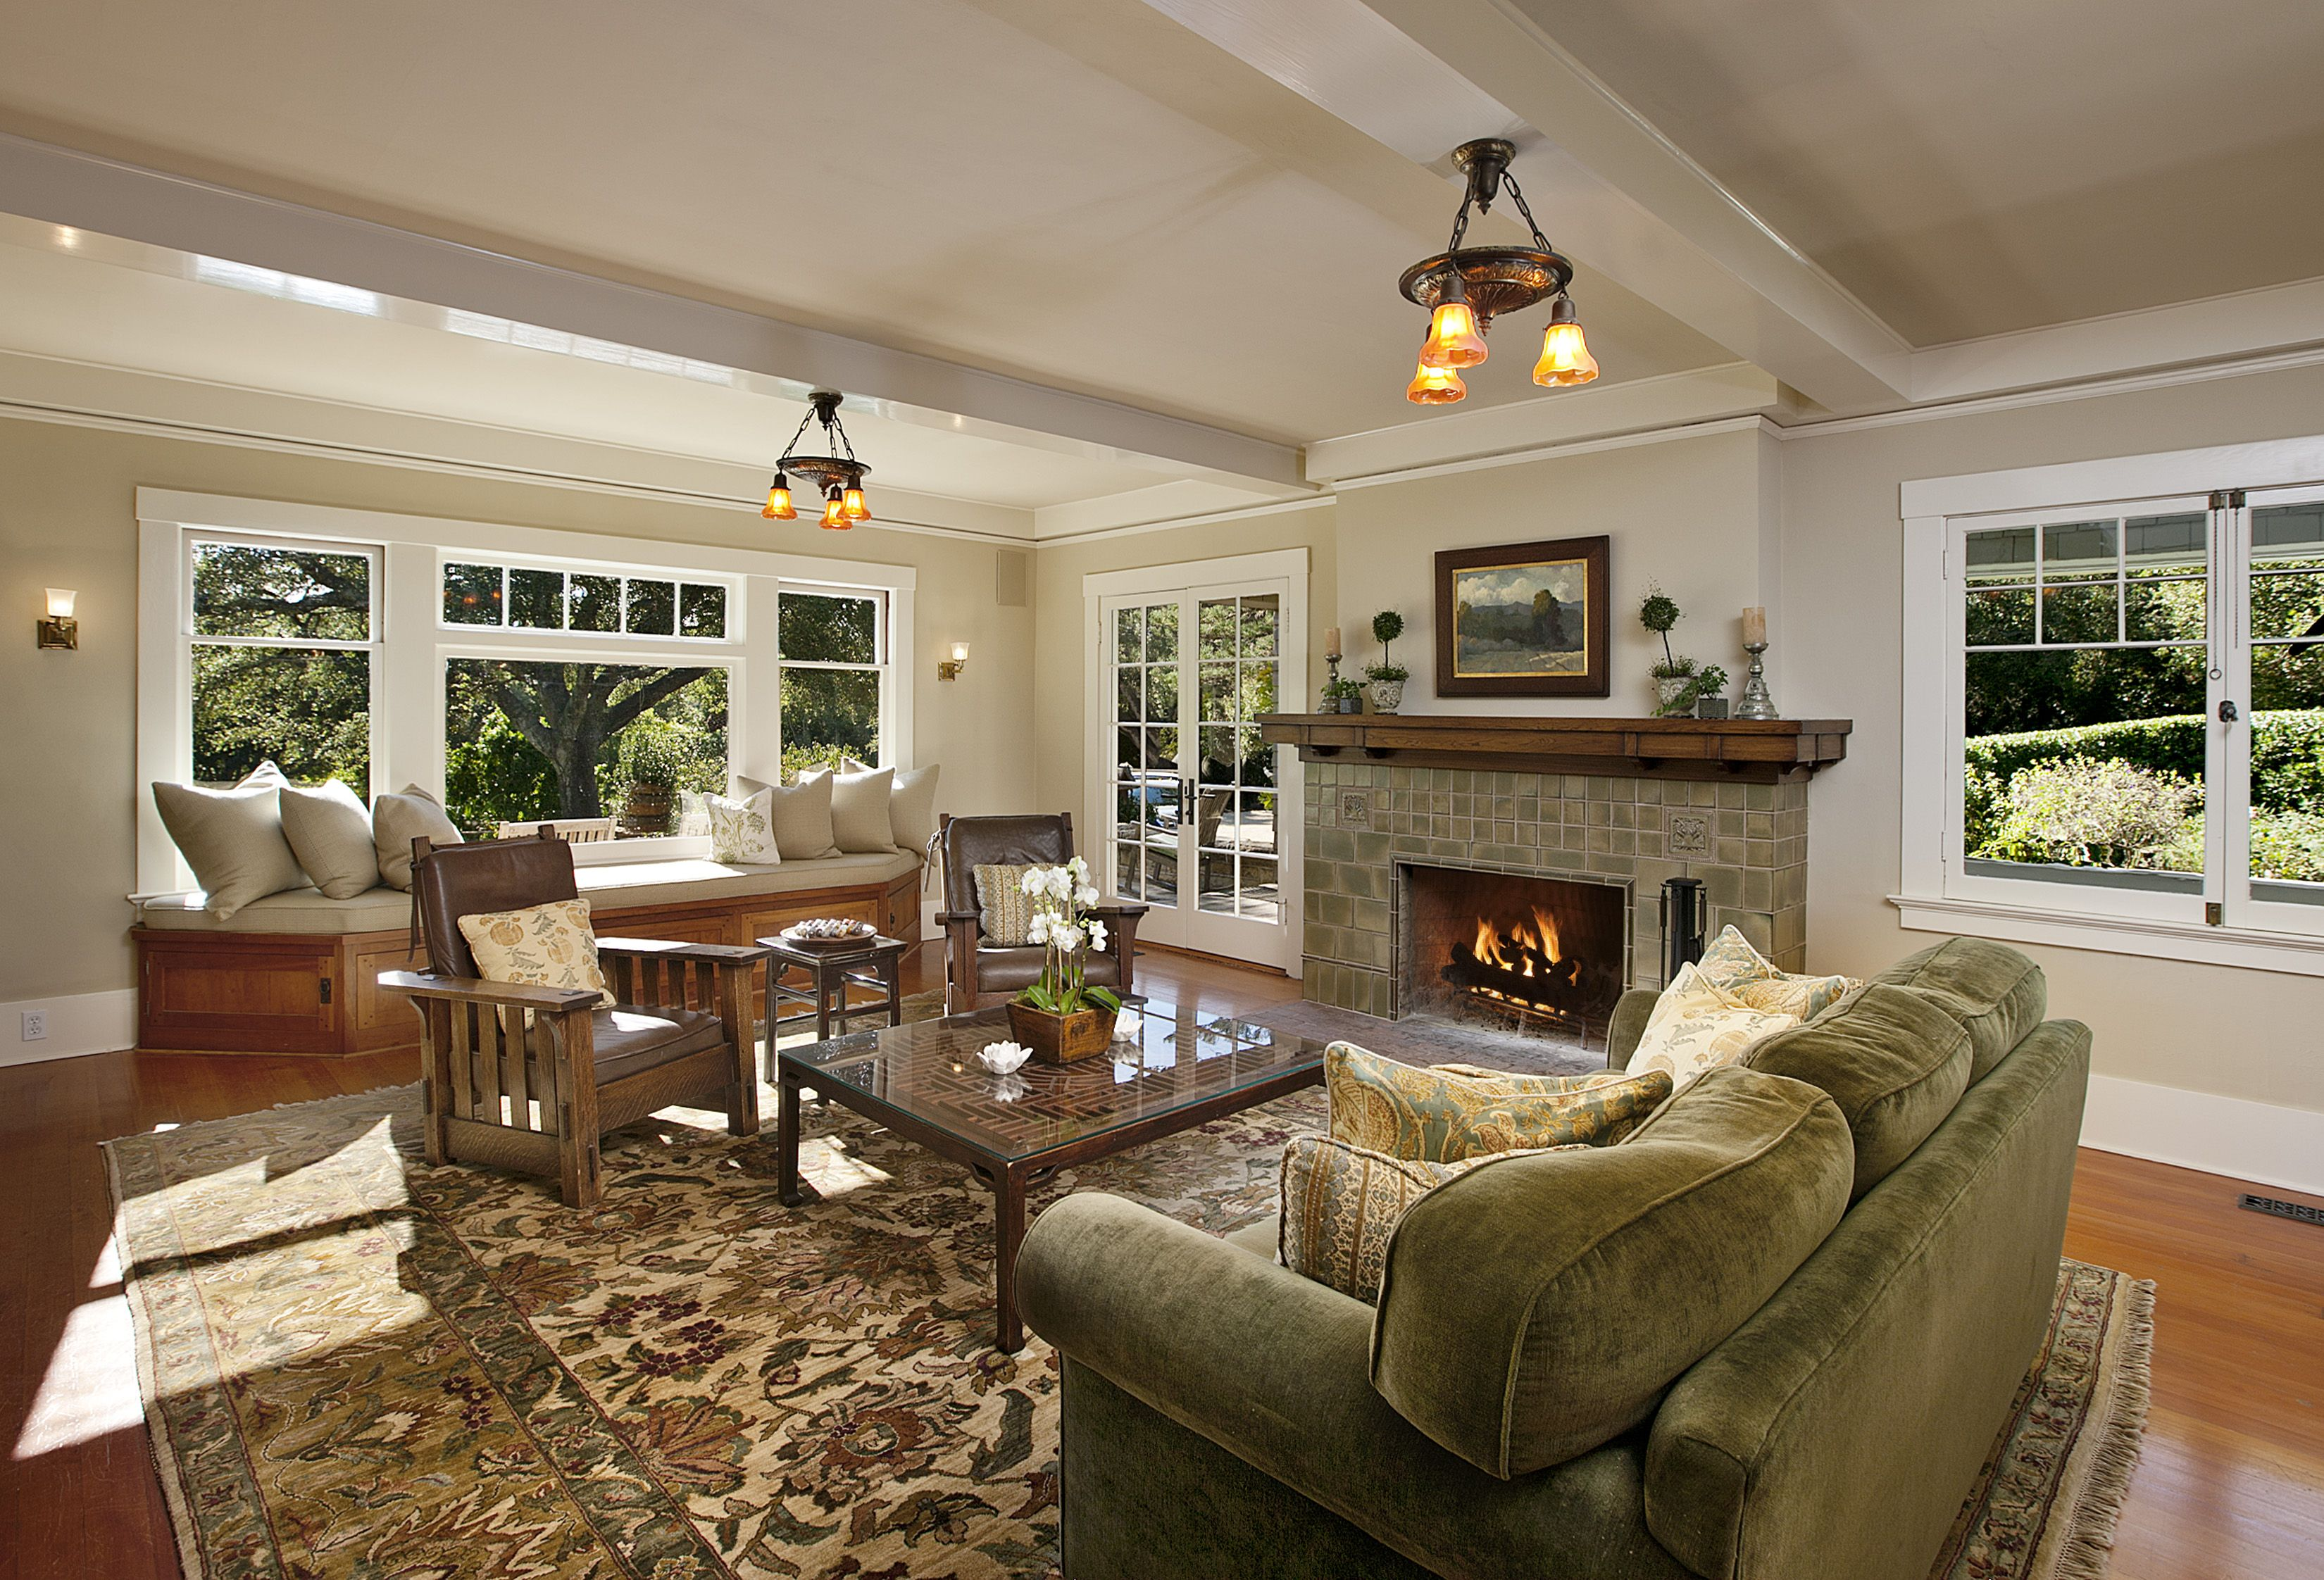 Interior Home Styles Mesmerizing Popular Home Styles For 2012  Craftsman Style Craftsman And